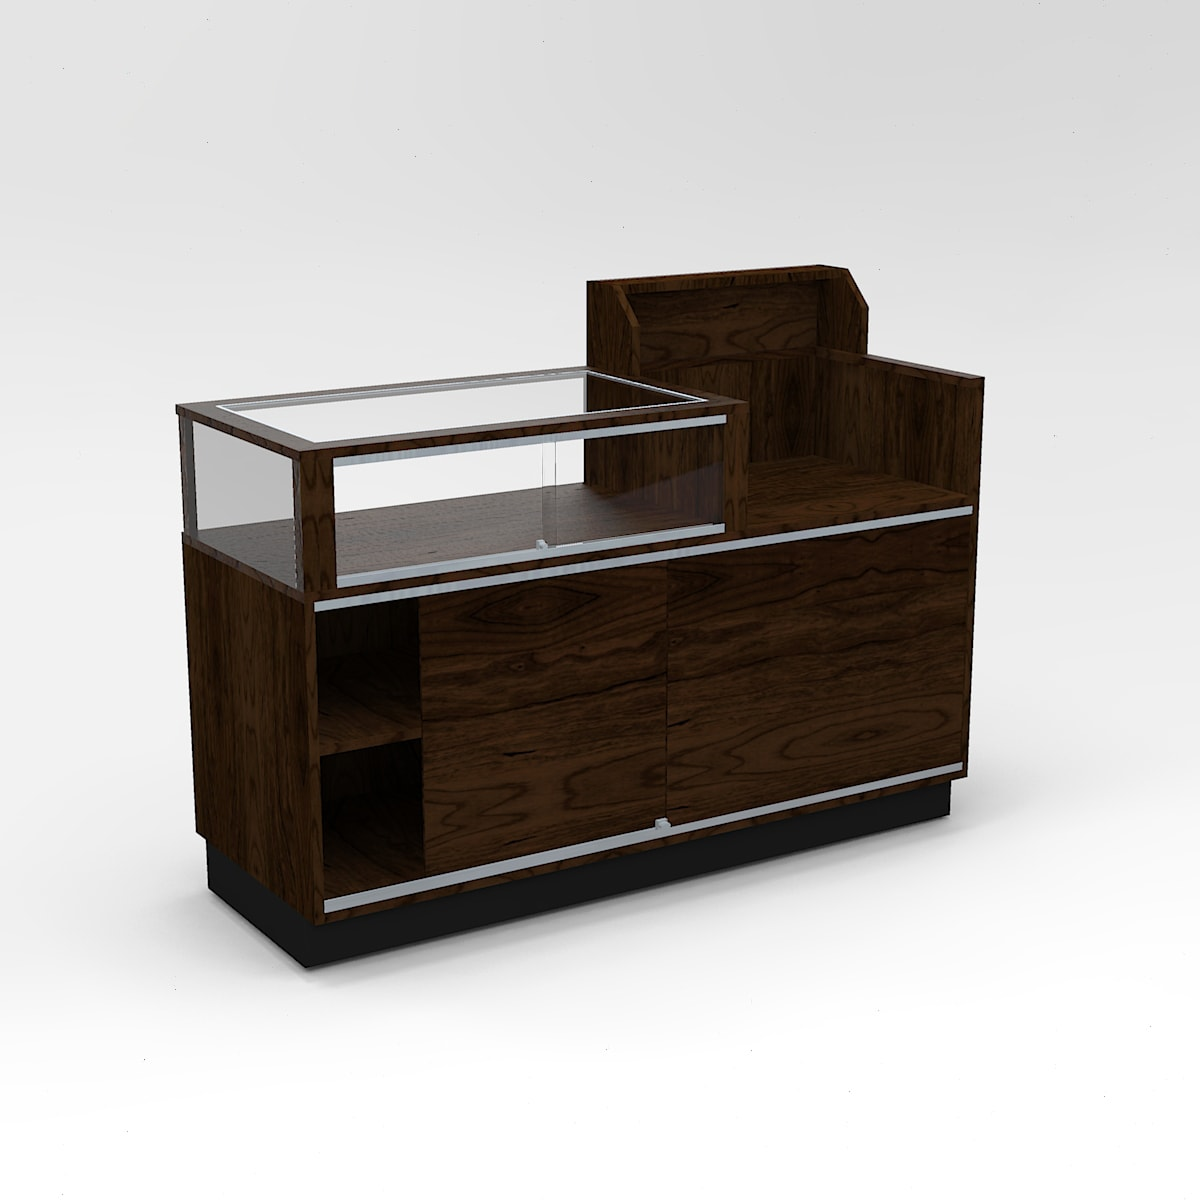 Back View of a Jewelry Vision Contemporary Cash Wrap Display Case To Purchase